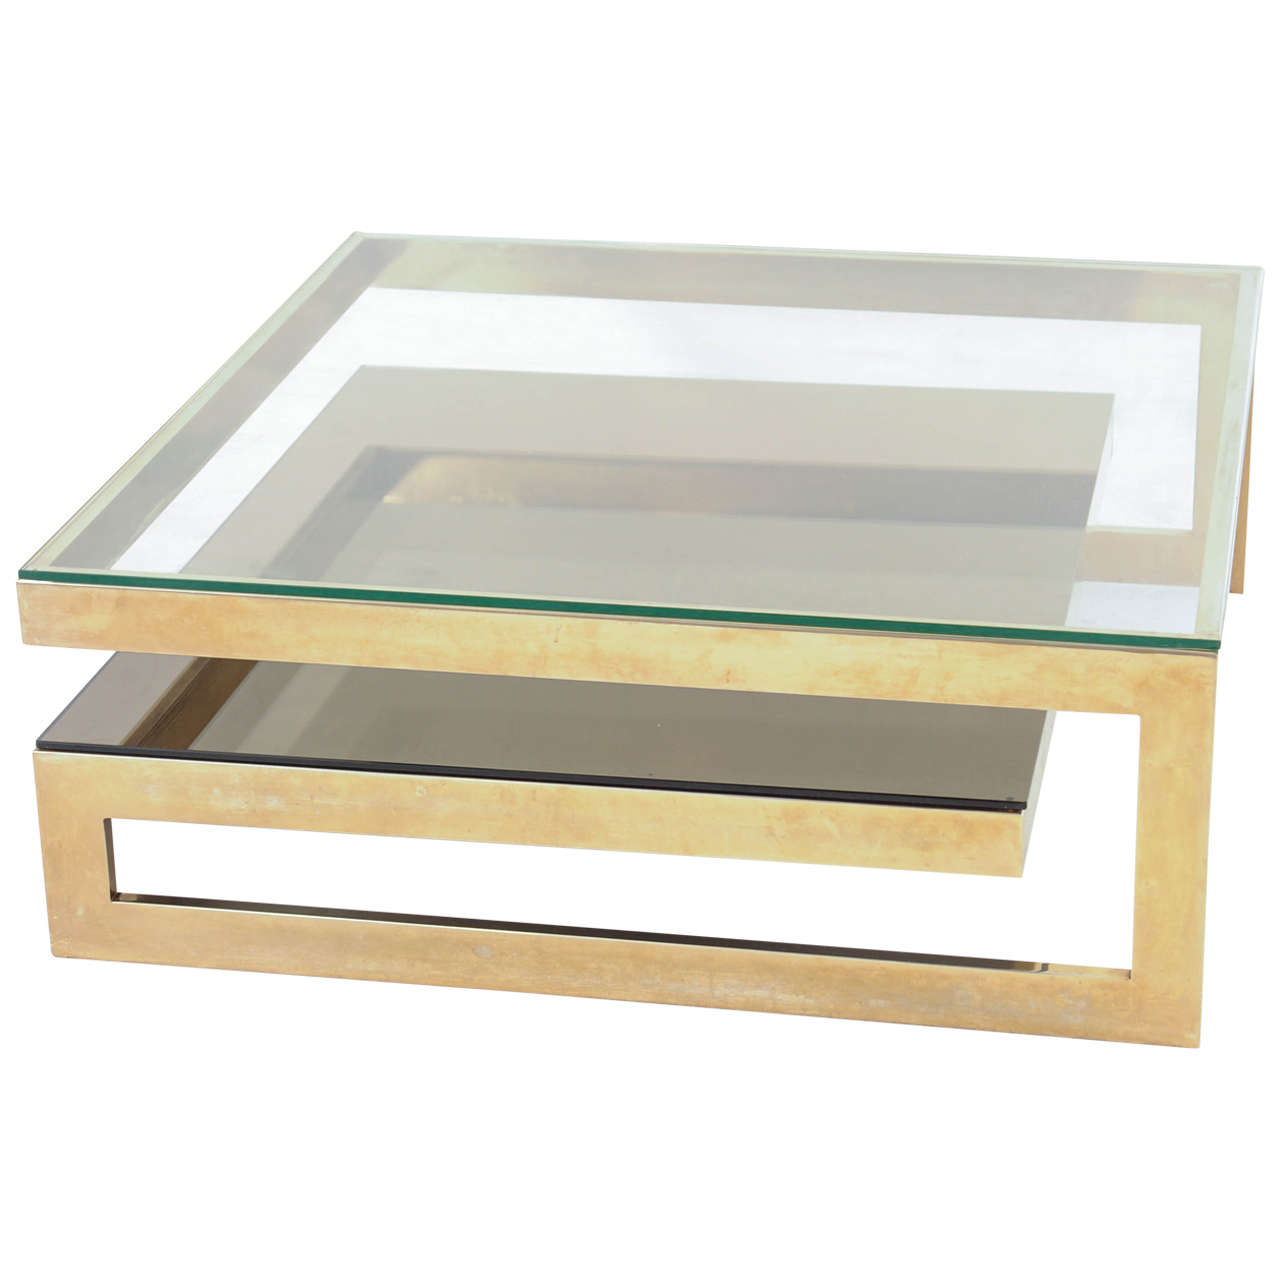 G Shaped 23 Carat Gold Plated Coffee Table 1